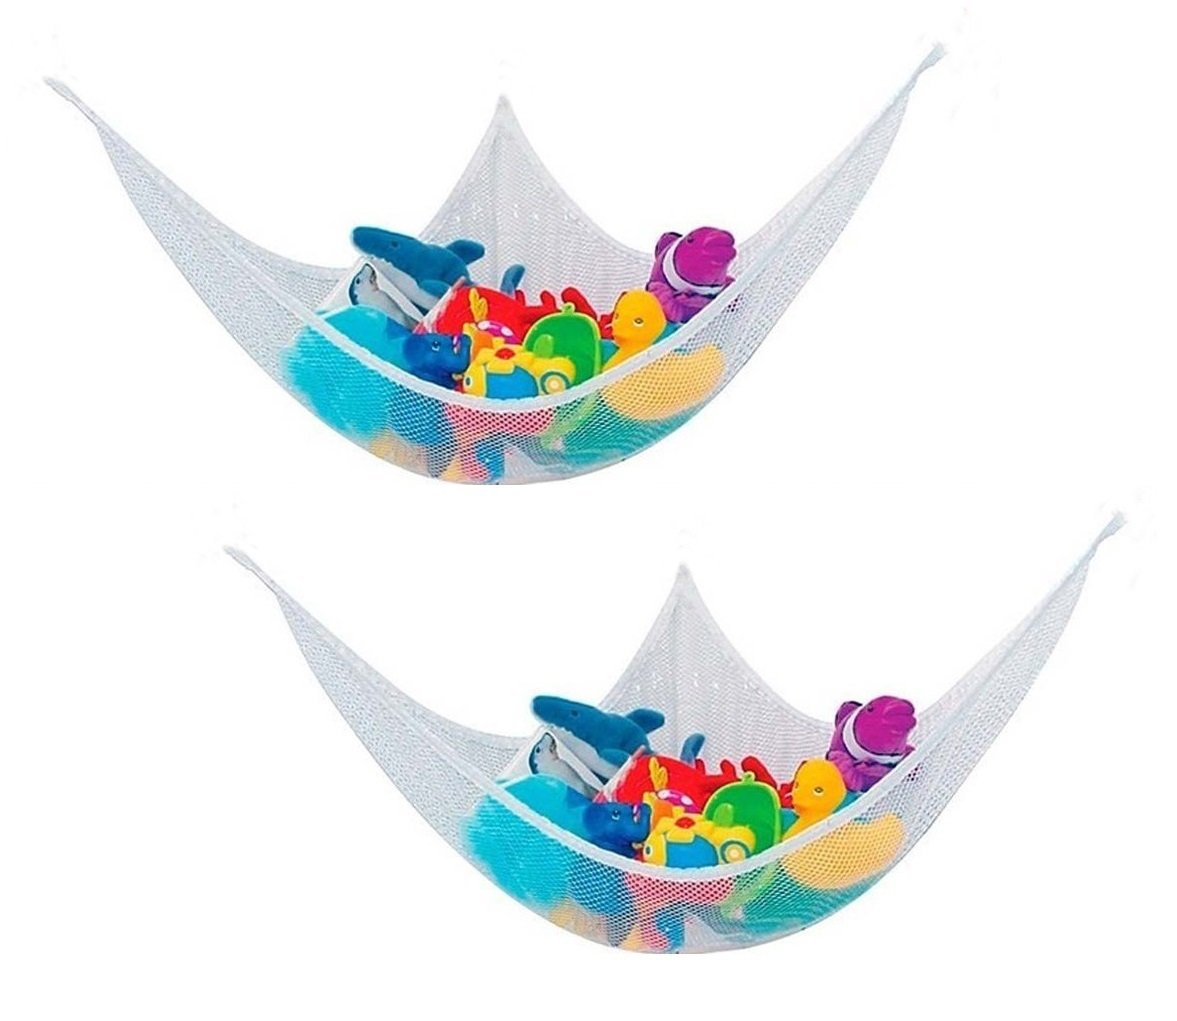 O-Best 2 Pack Toy Hammock Organizer Storage Mesh Net for Children's Stuffed Animals Toys Ideal Solution for Gathering Stuffed Dolls Large